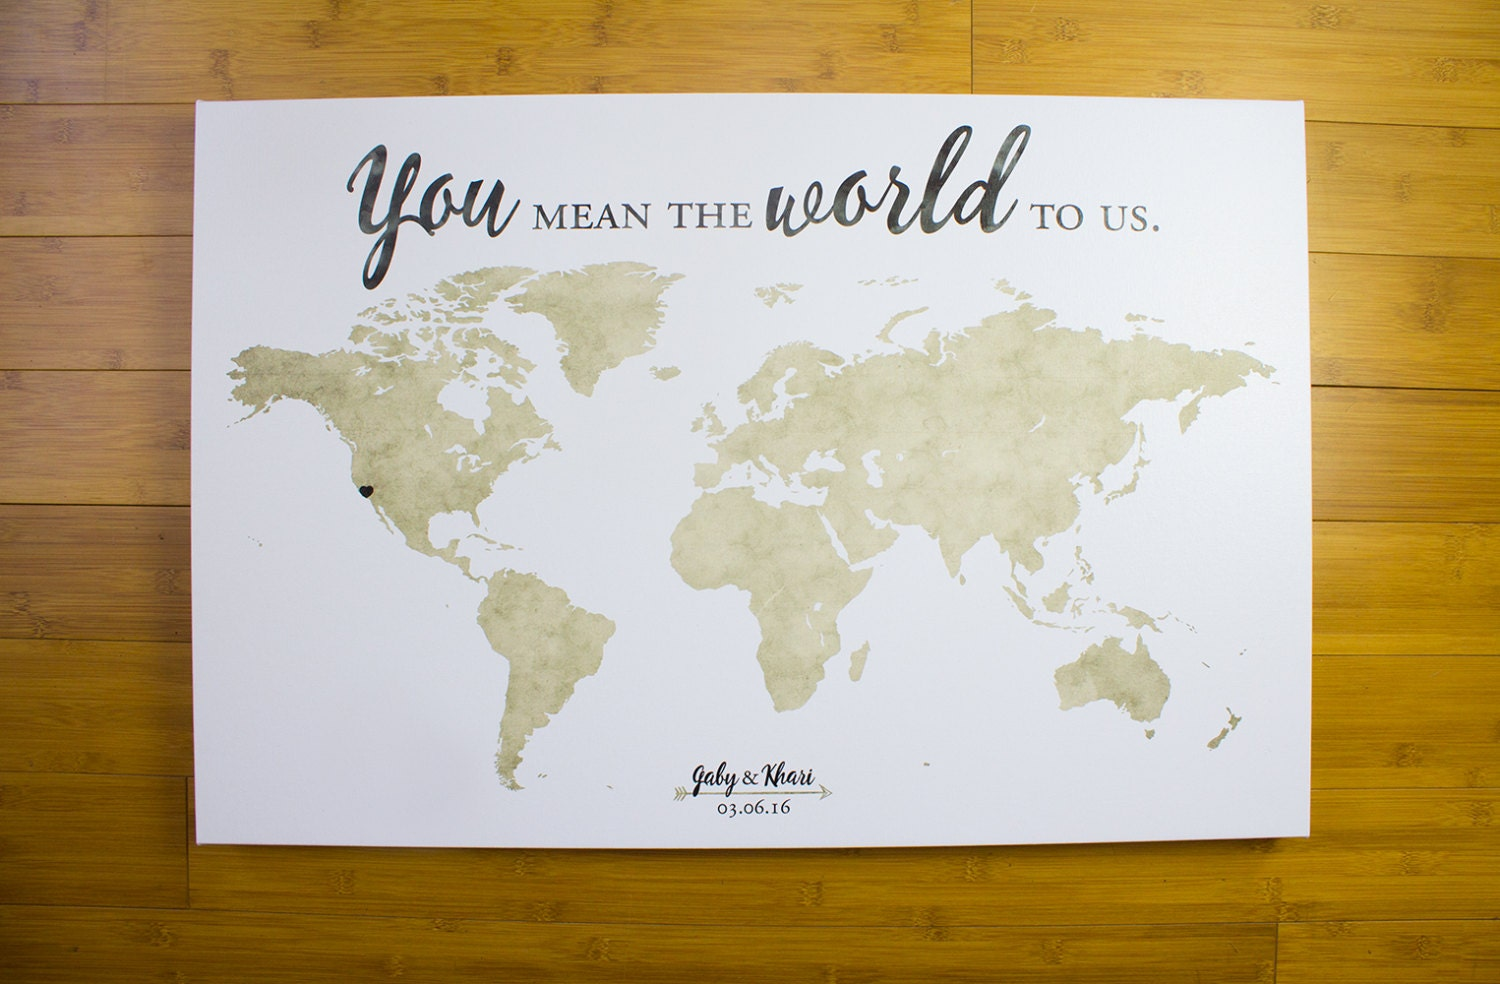 World map wedding guest book guest book alternative you mean the world map wedding guest book guest book alternative you mean the world to us gumiabroncs Images